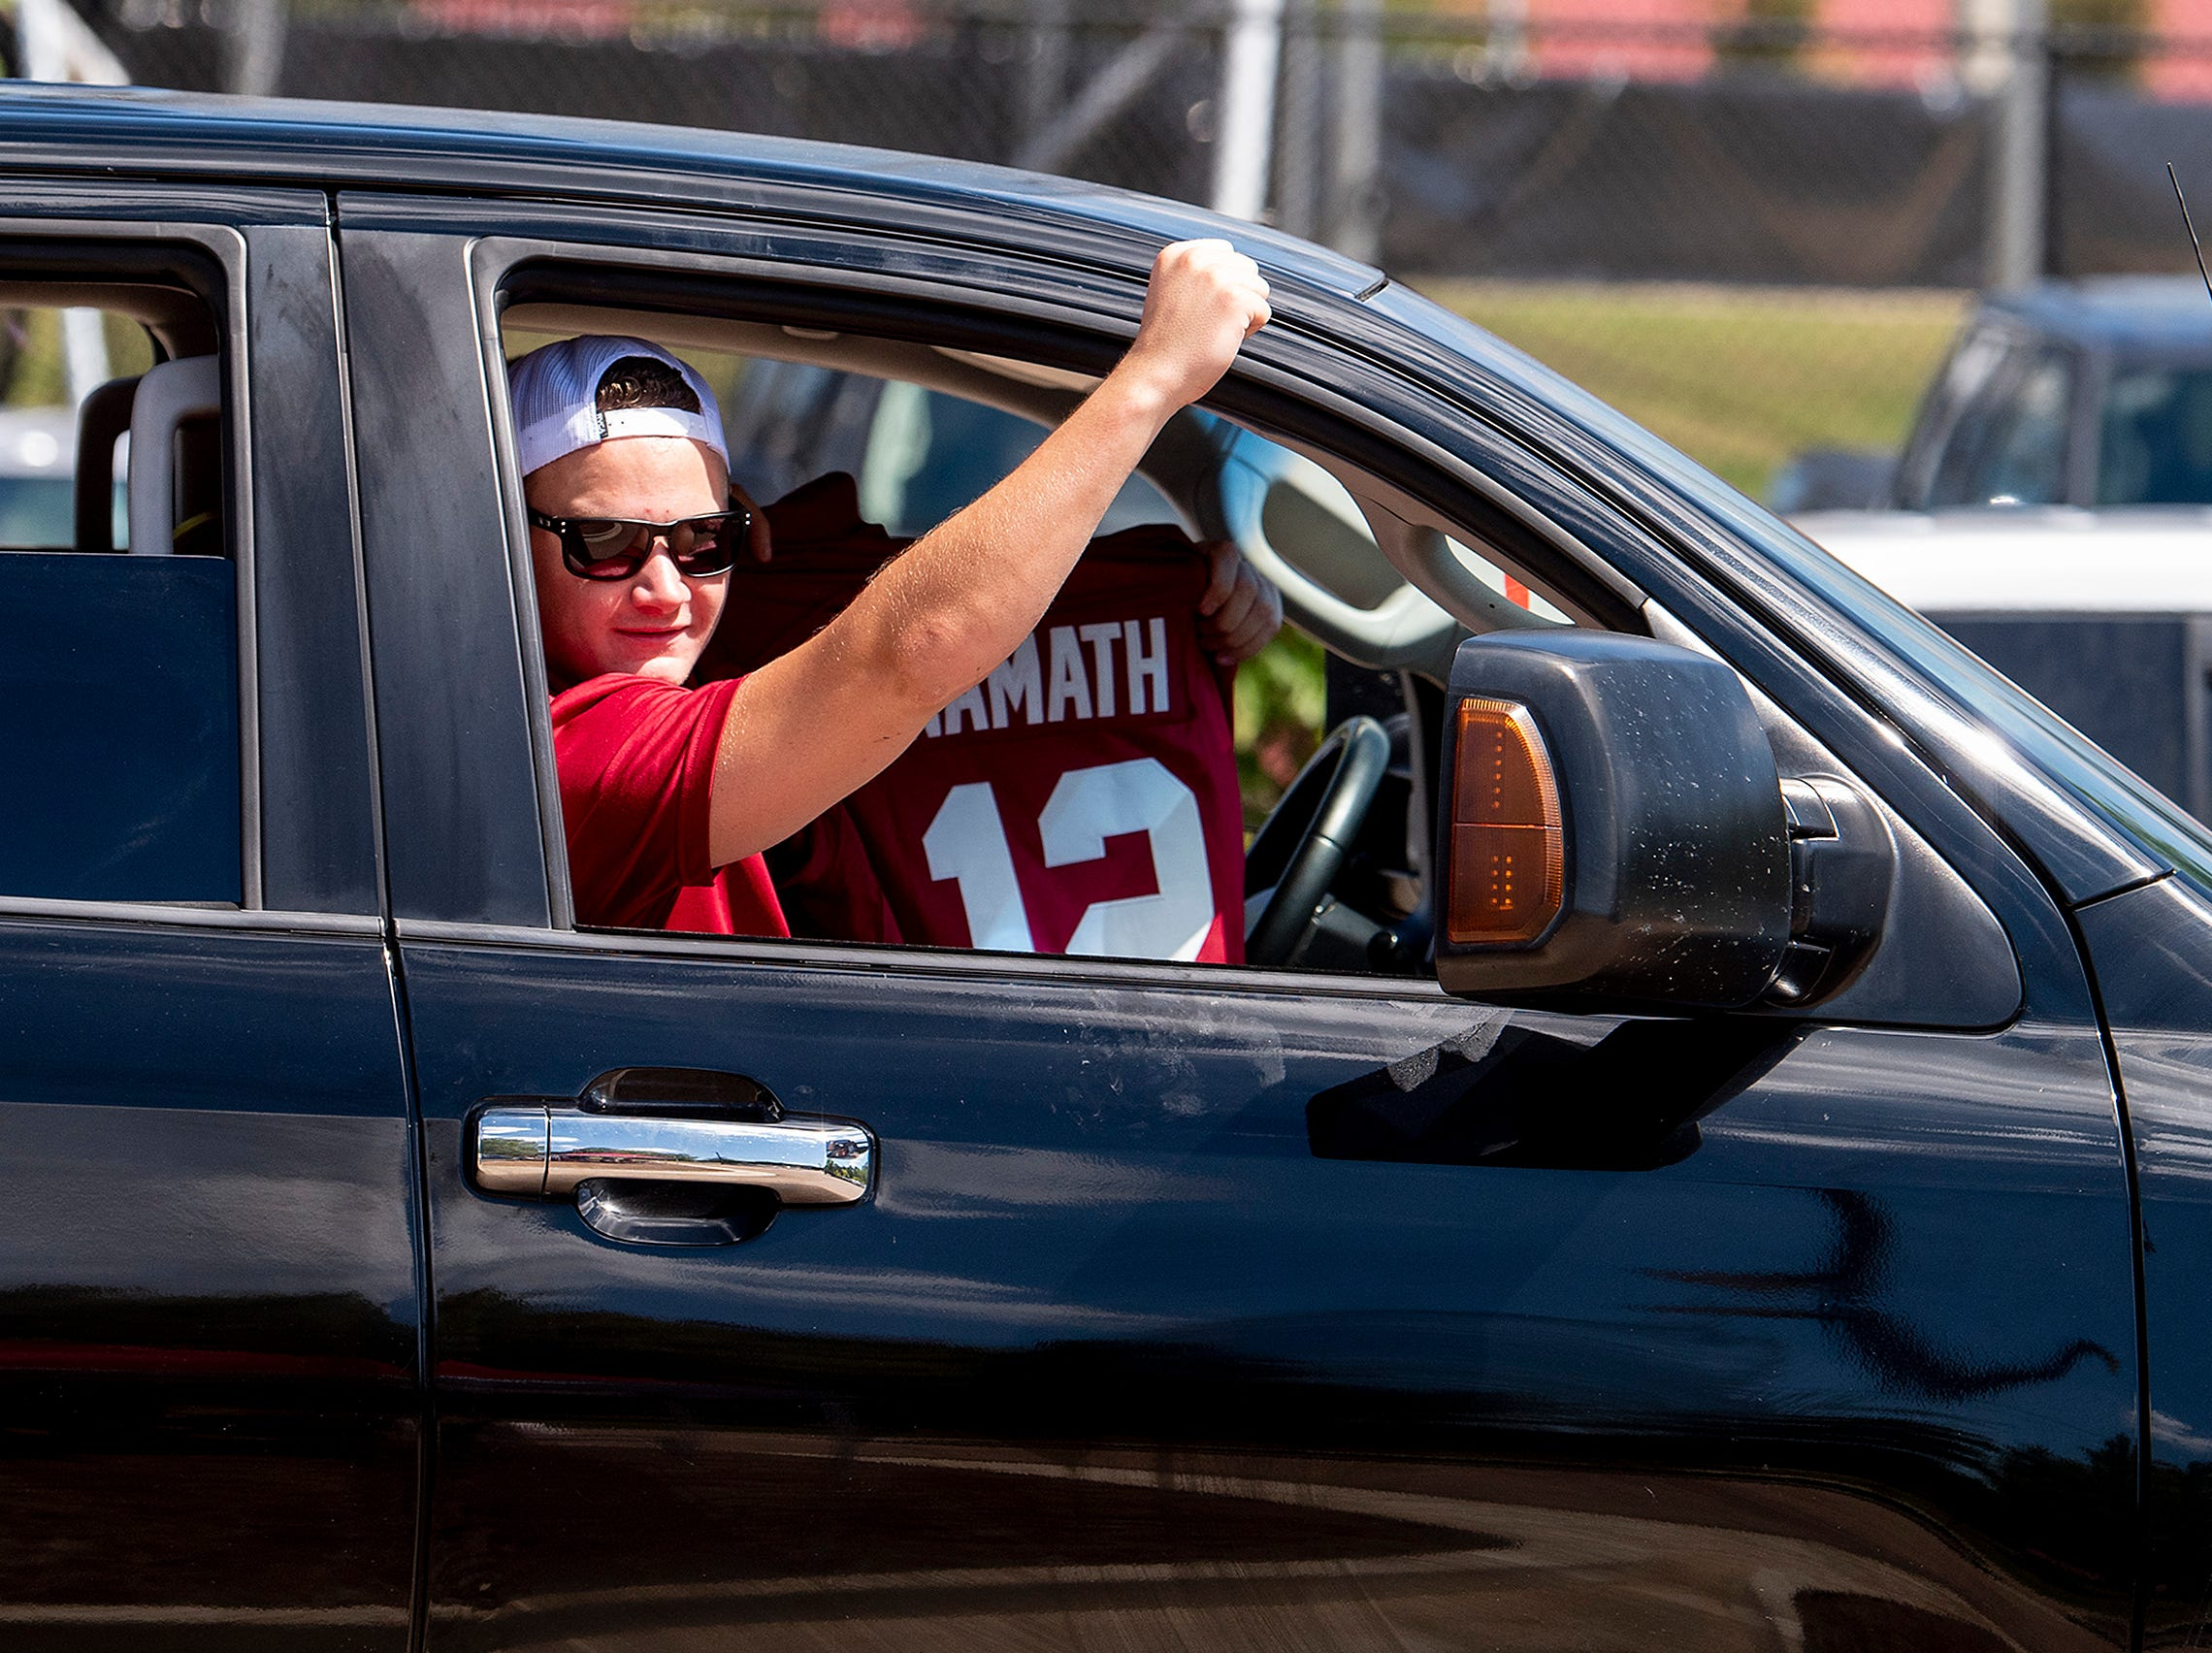 Alabama fans cruise through the Ole Miss campus in Oxford, Ms., on Saturday September 15, 2018.